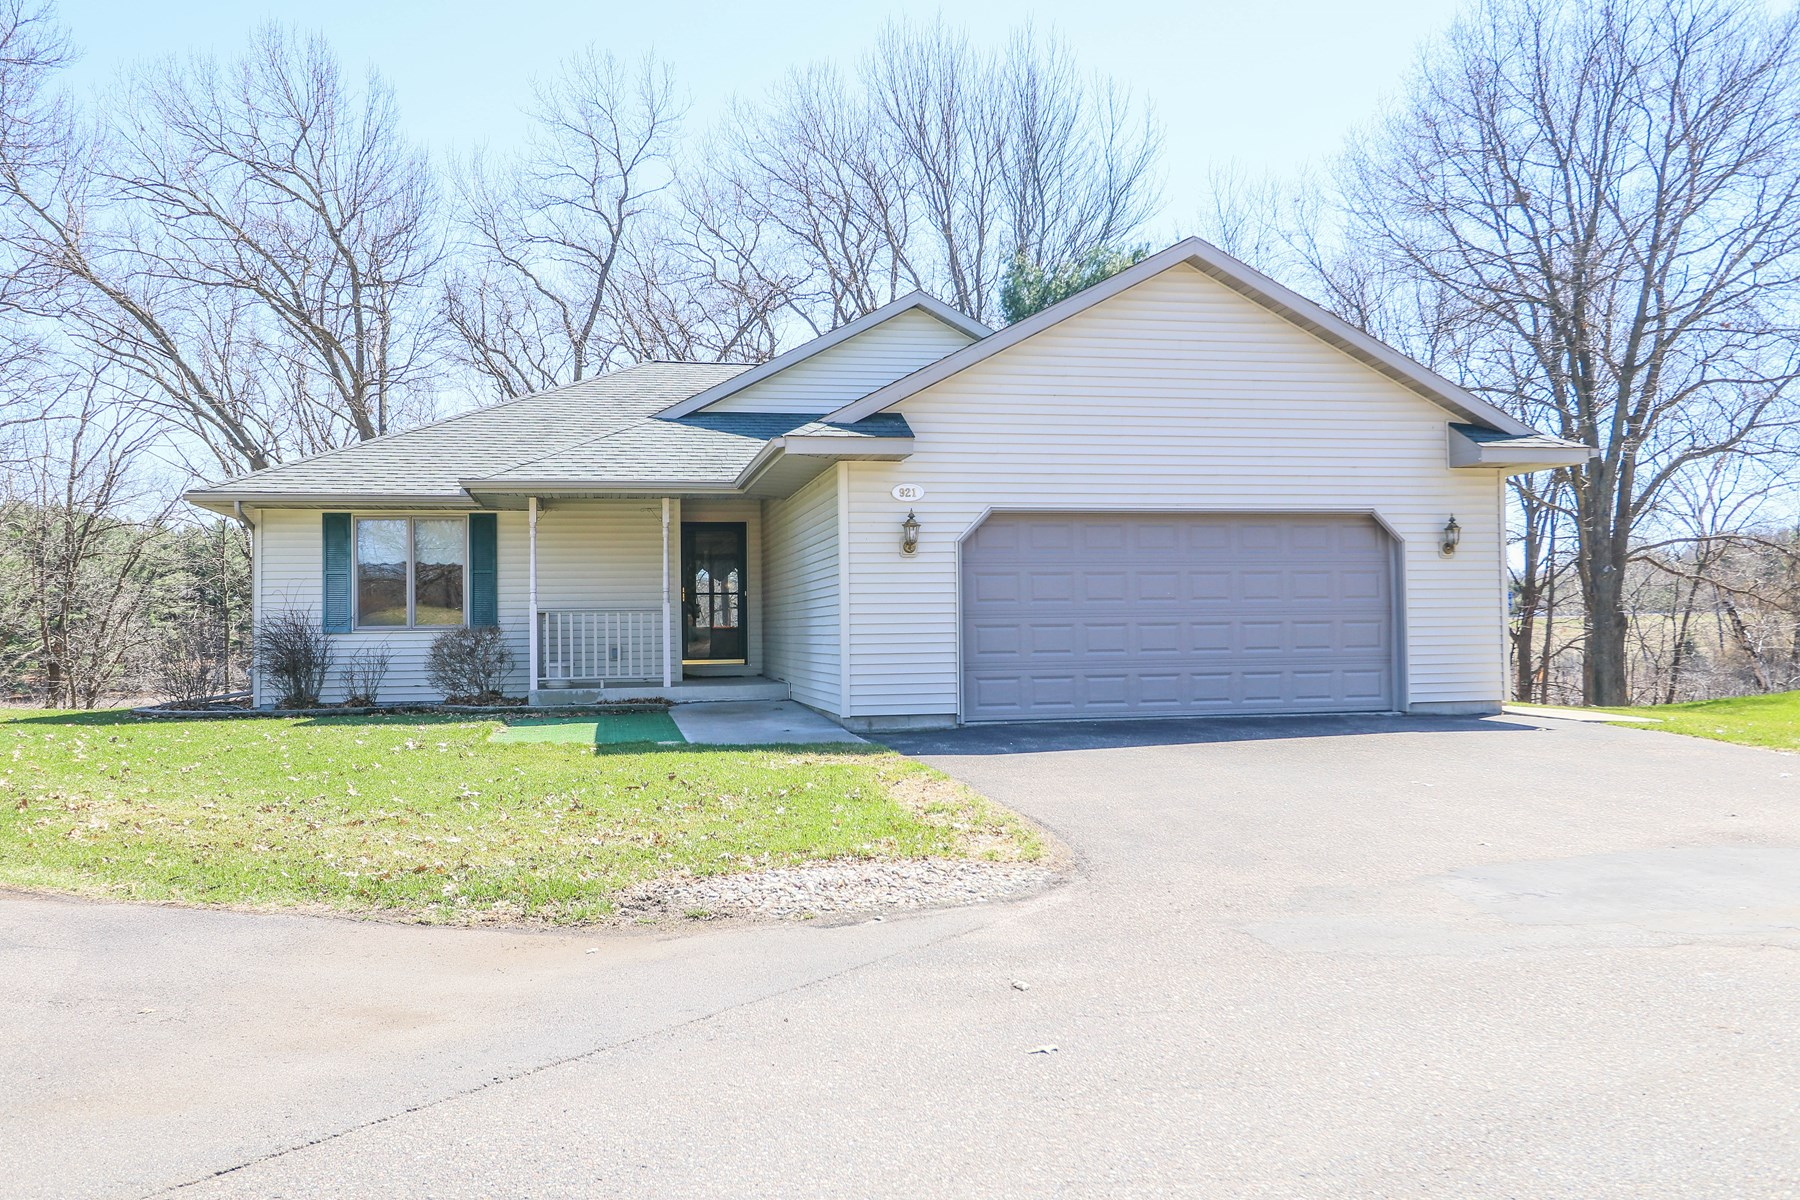 Home For Sale in Town of Waupaca